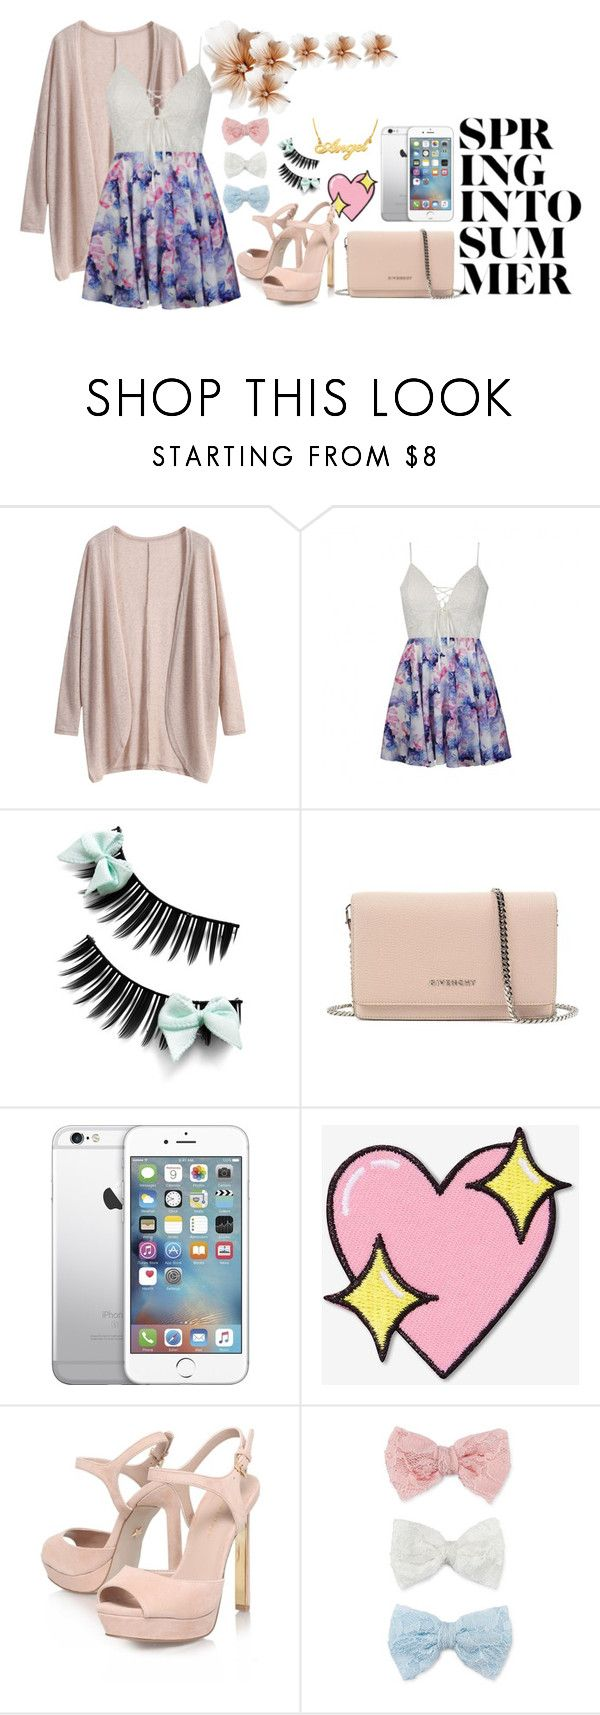 """Spring into summer"" by sofi-ju ❤ liked on Polyvore featuring Ally Fashion, Givenchy, AT&T, Big Bud Press, KG Kurt Geiger and Decree"